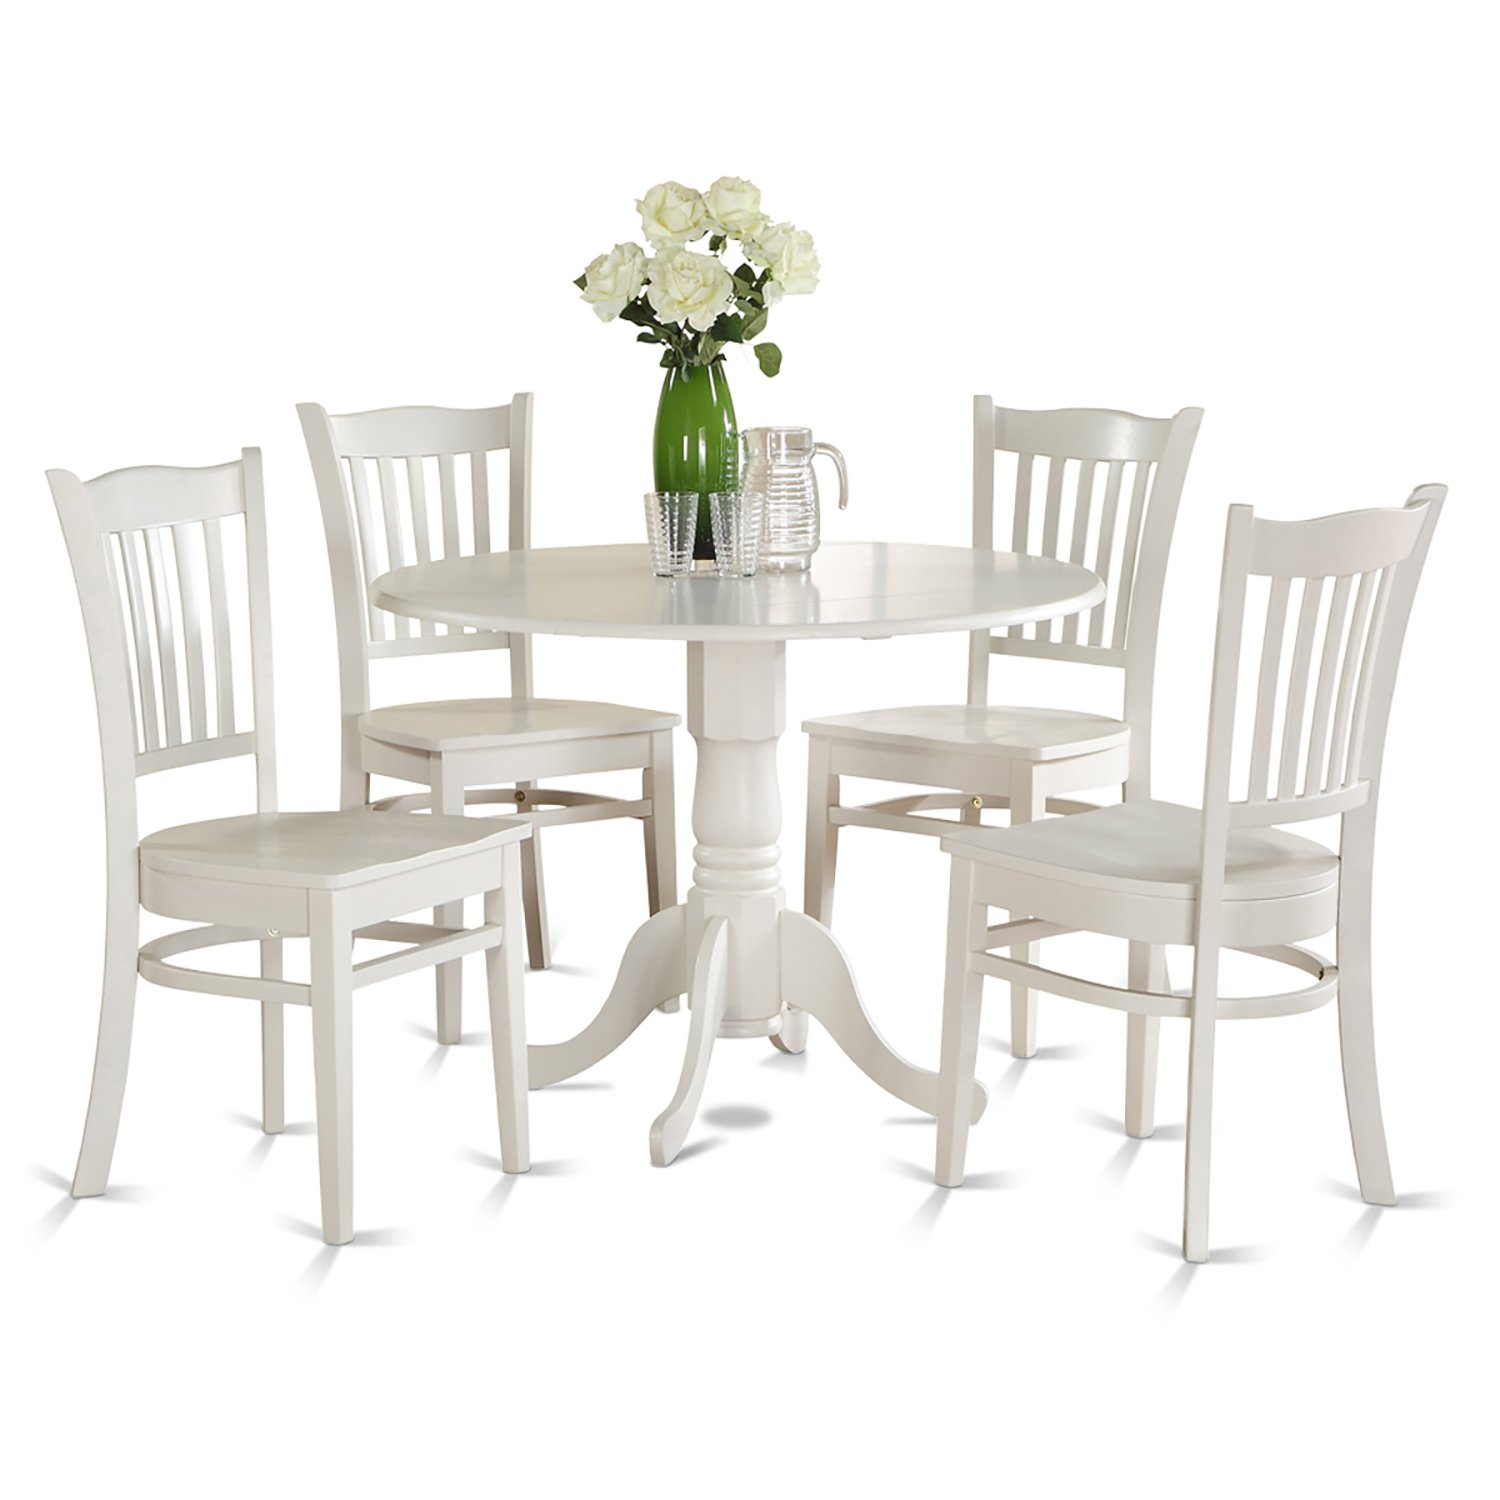 Superieur Amazon.com   East West Furniture DLGR5 WHI W 5 Piece Kitchen Nook Dining  Table Set, Linen White Finish   Table U0026 Chair Sets